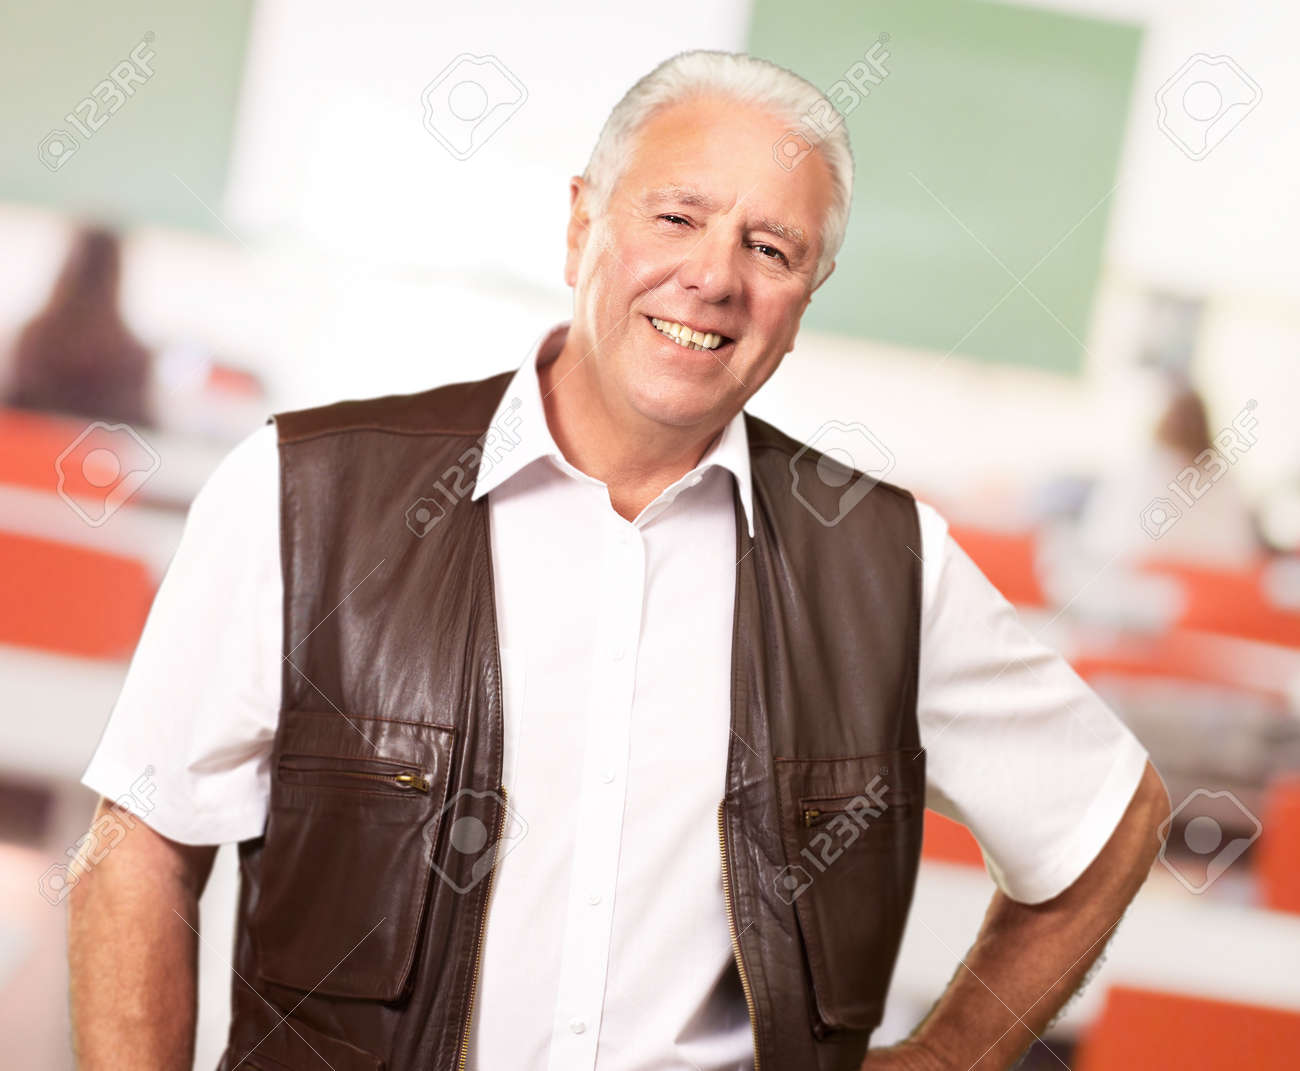 Senior Man Standing With Hand On Hips, Indoor Stock Photo - 14826084